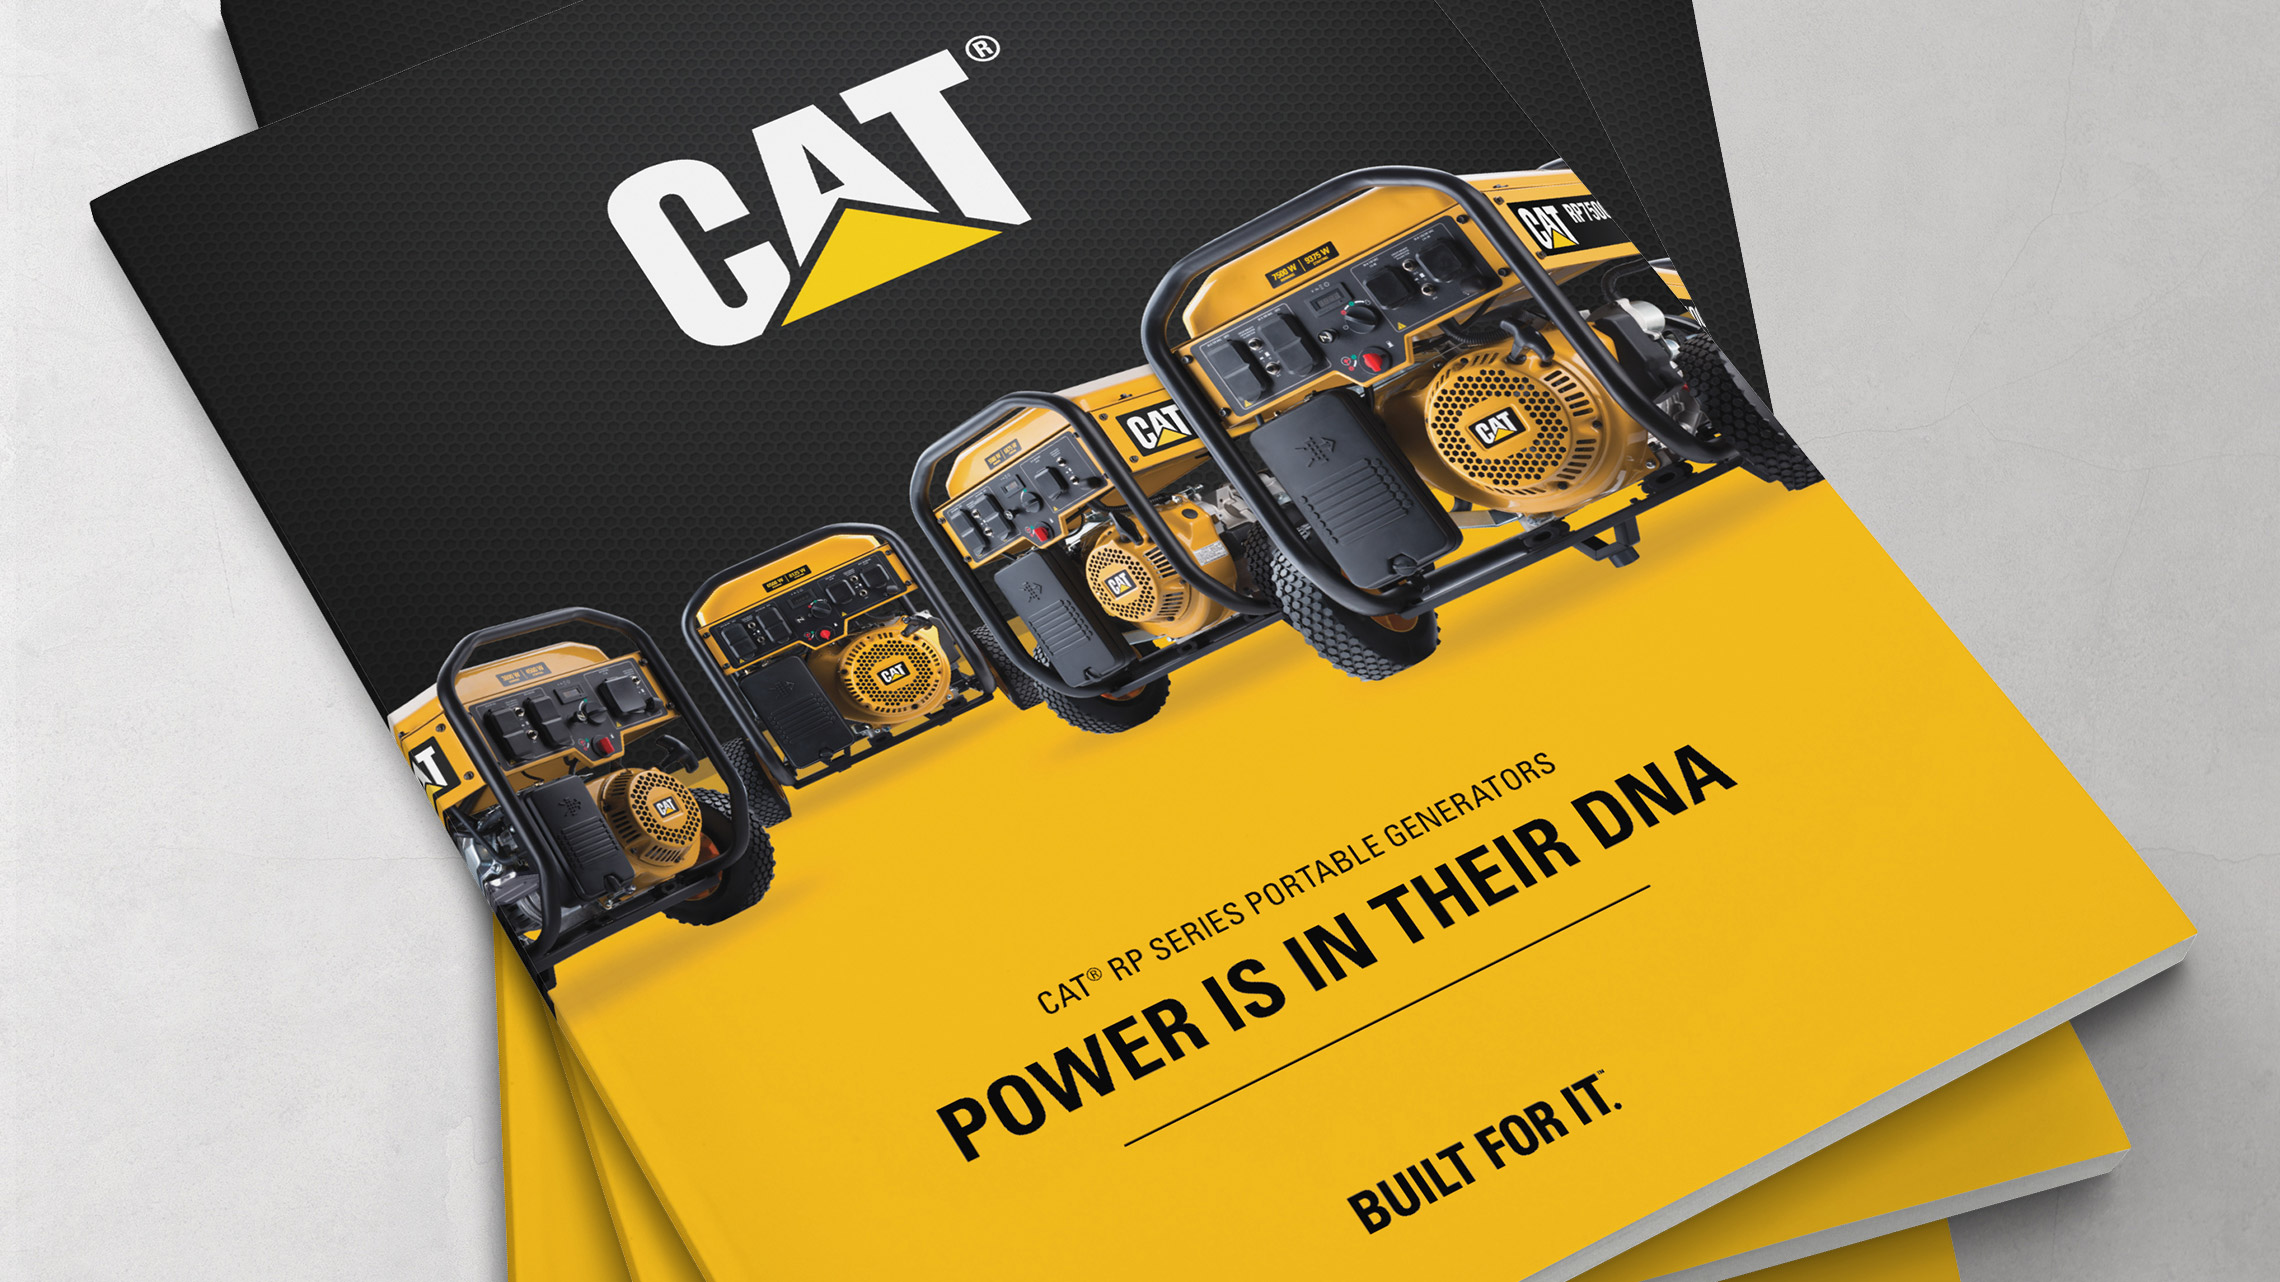 caterpillar consumer launch brochure